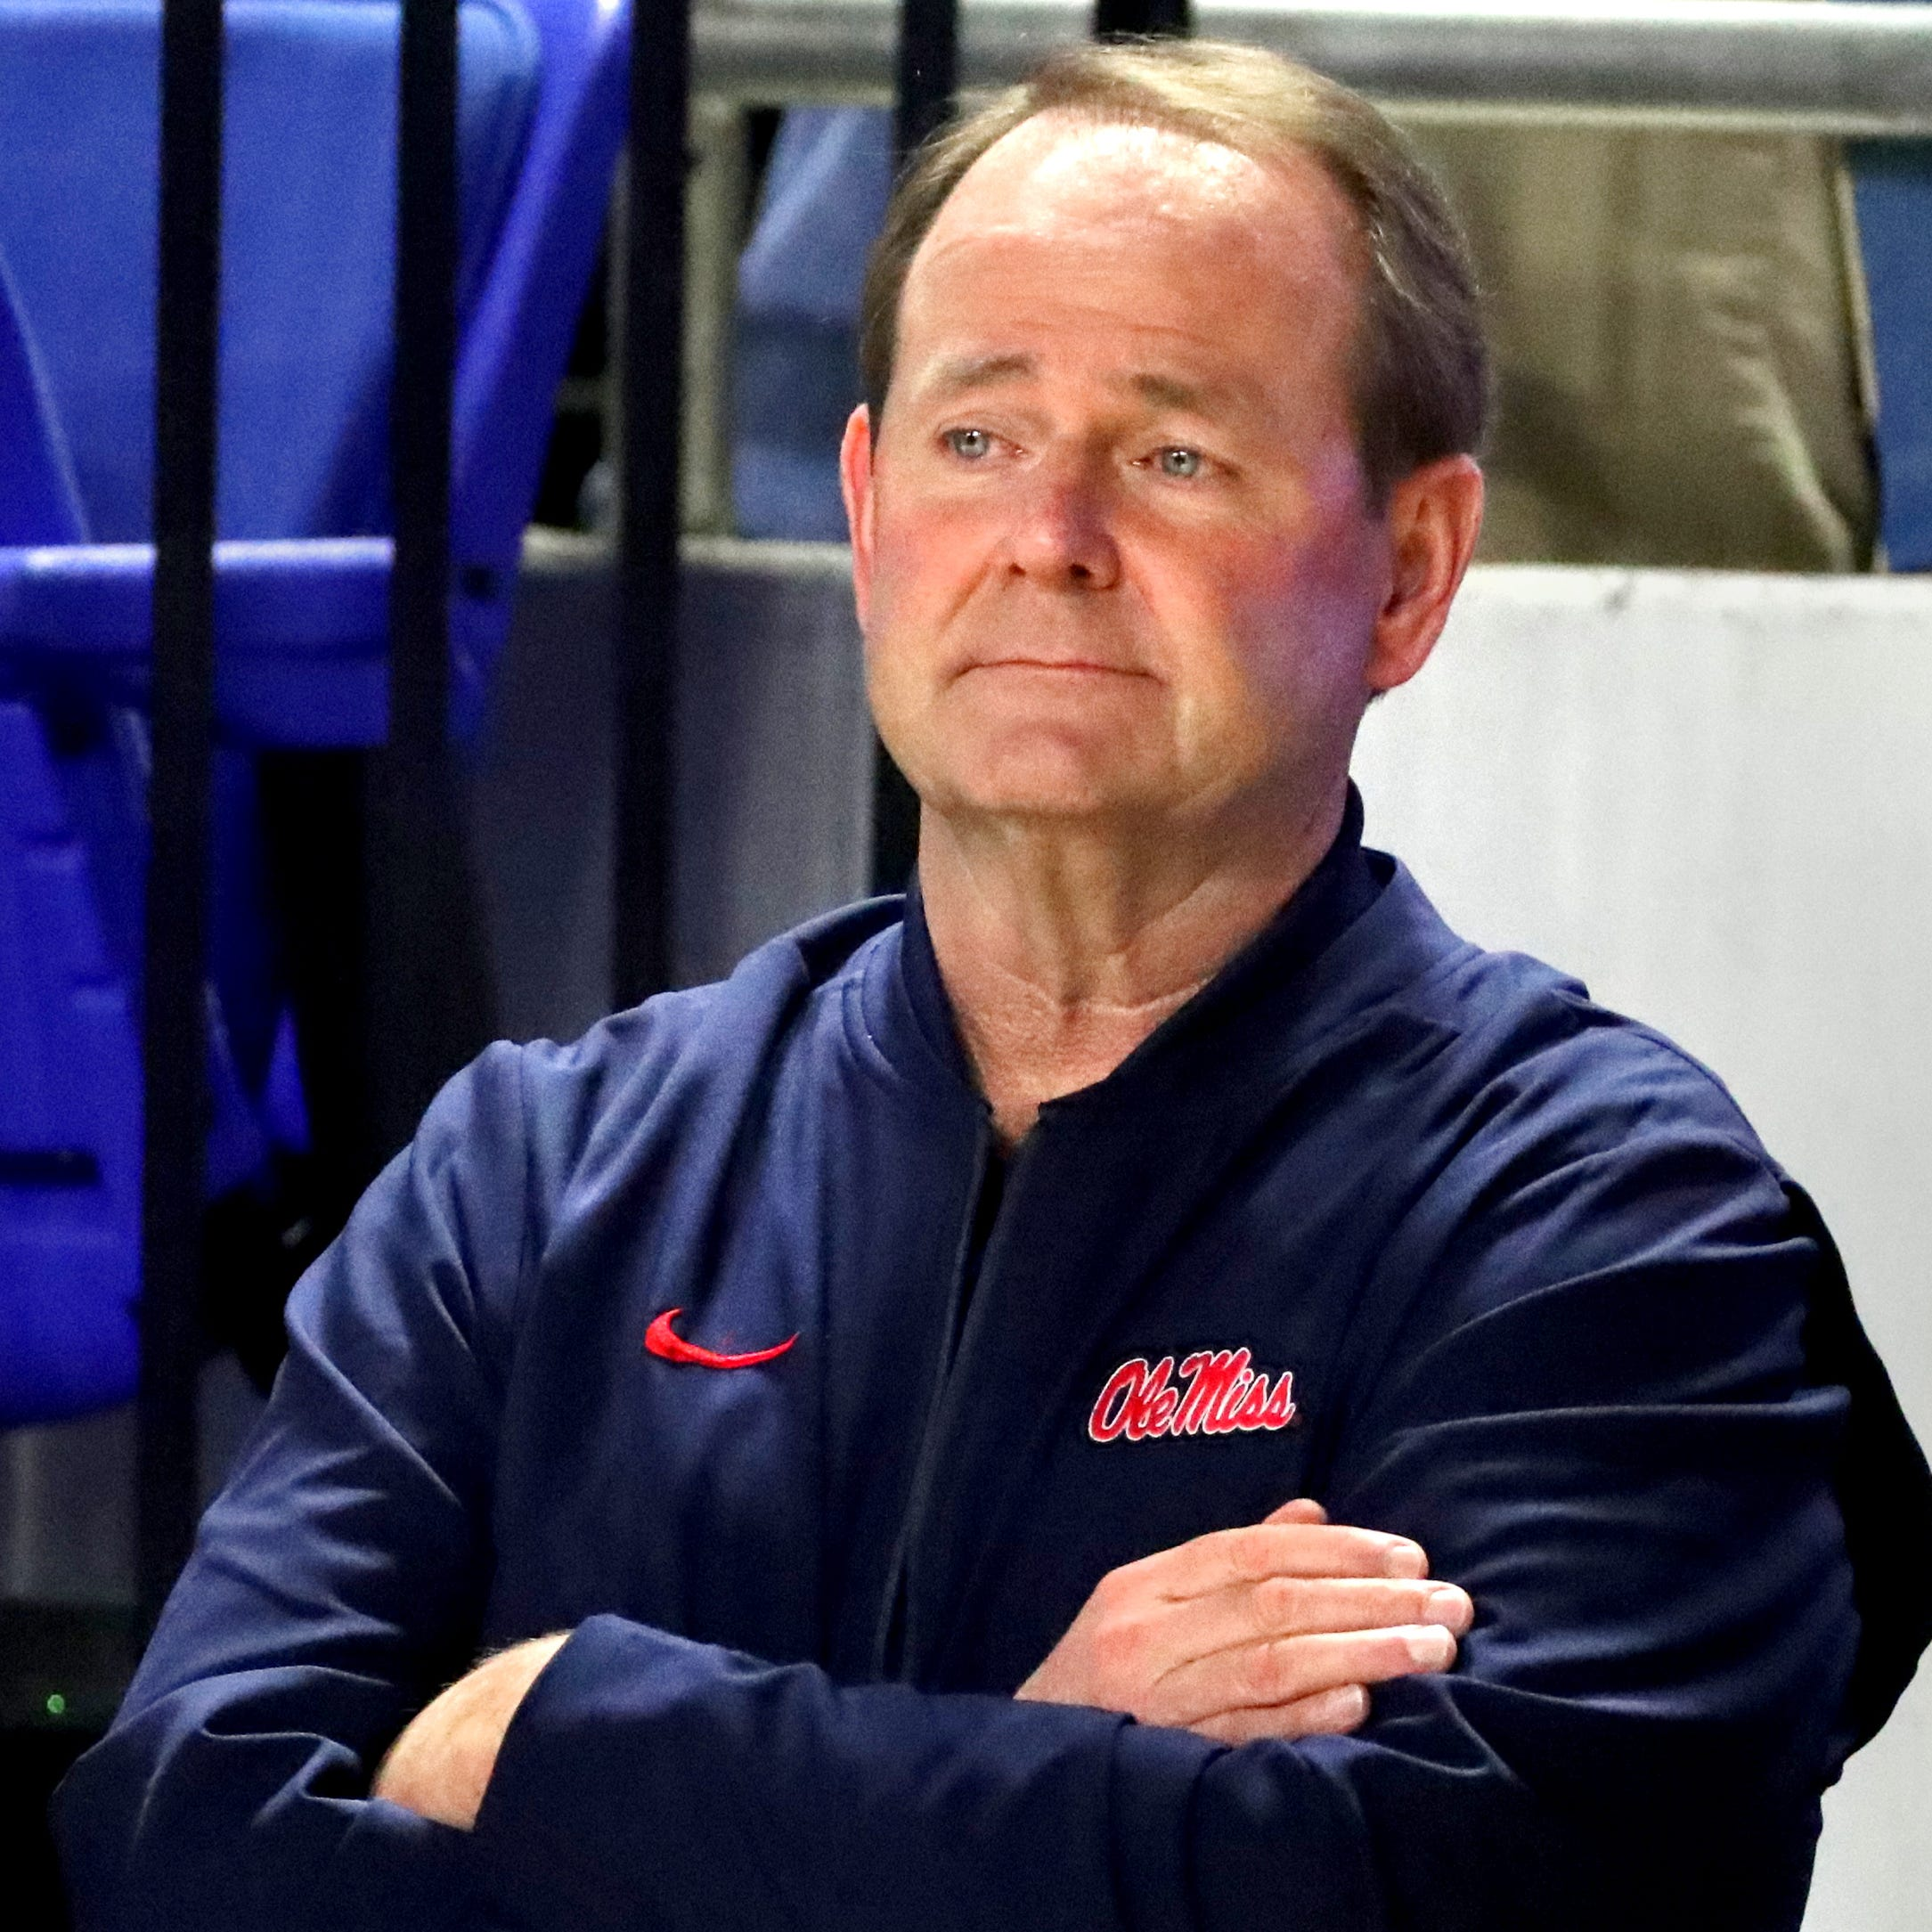 Look who's here: Ole Miss coach Kermit Davis attends TSSAA basketball state tournament at MTSU